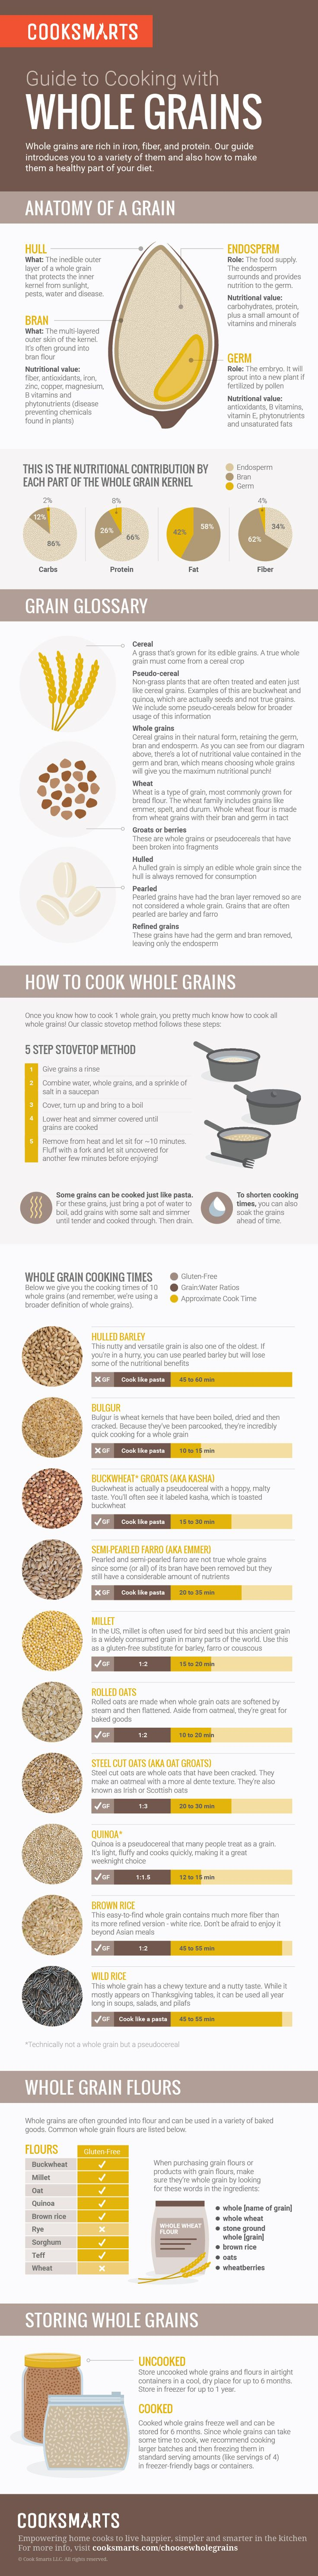 146 best Cook & Eat Healthy images on Pinterest   Cooking tips, Food ...